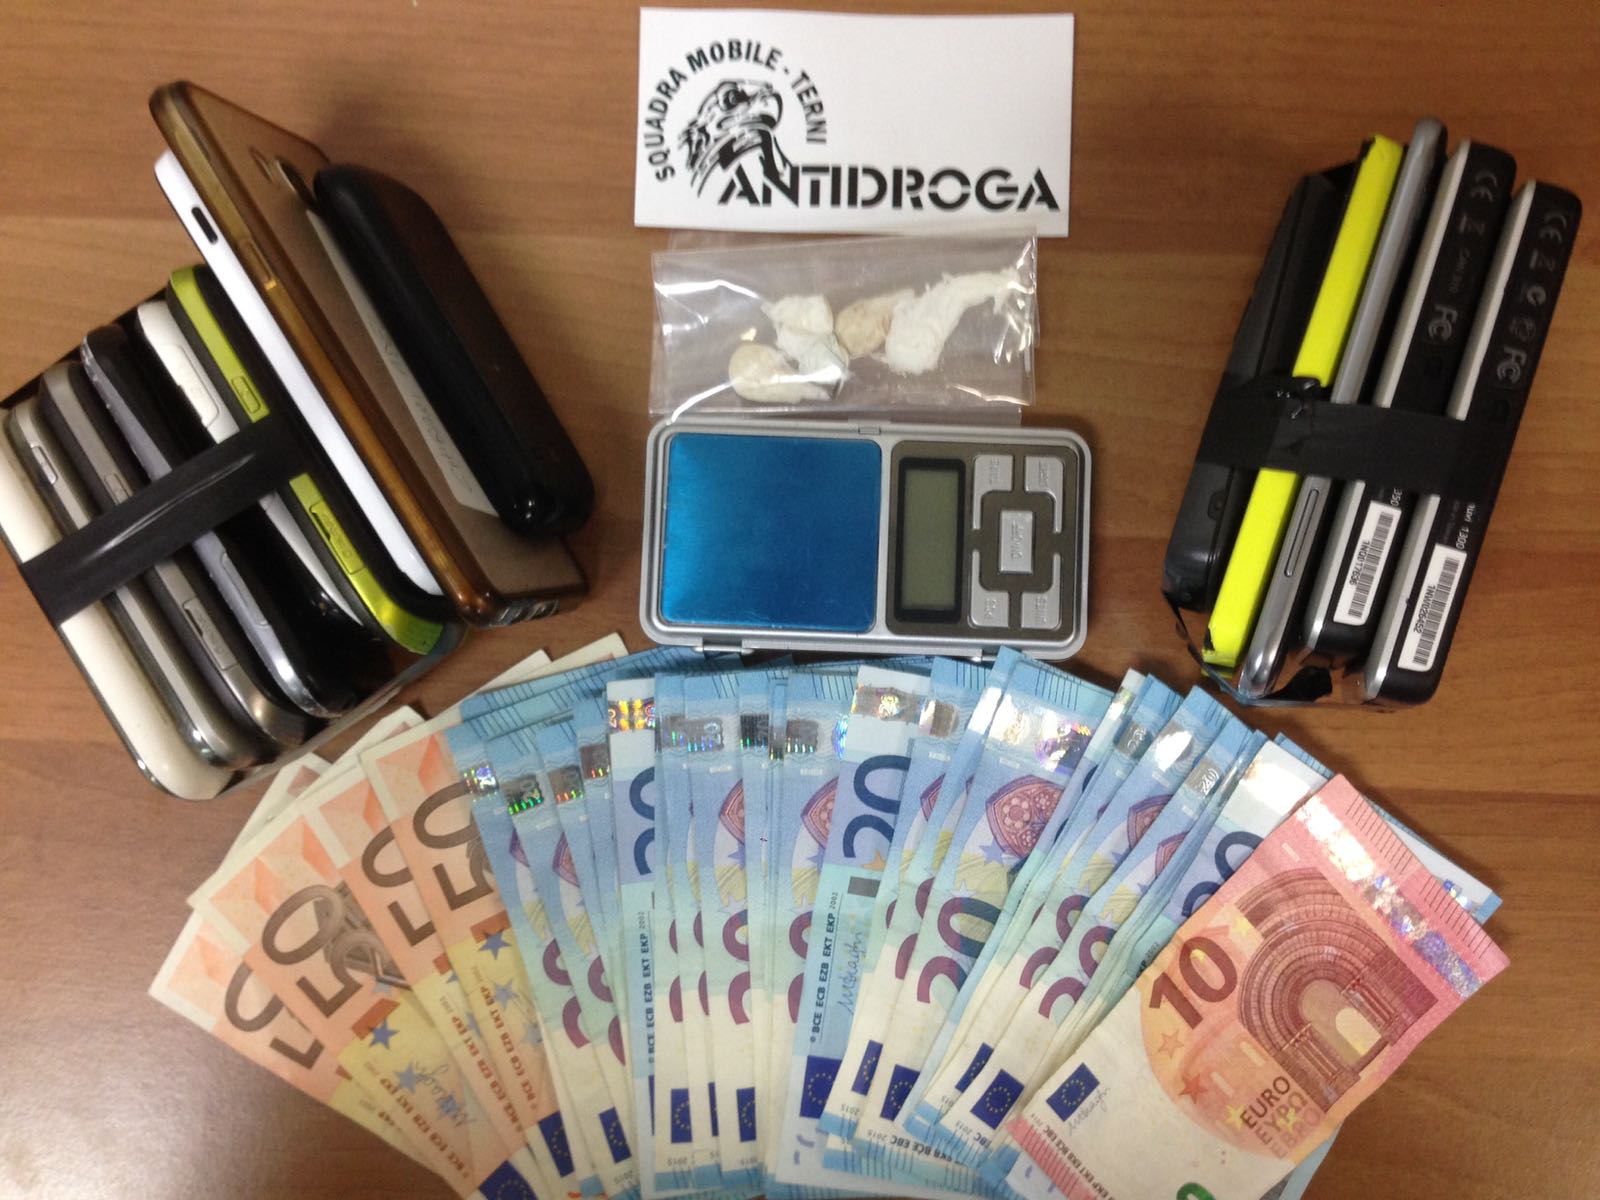 La droga e i 14 cellulari sequestrati